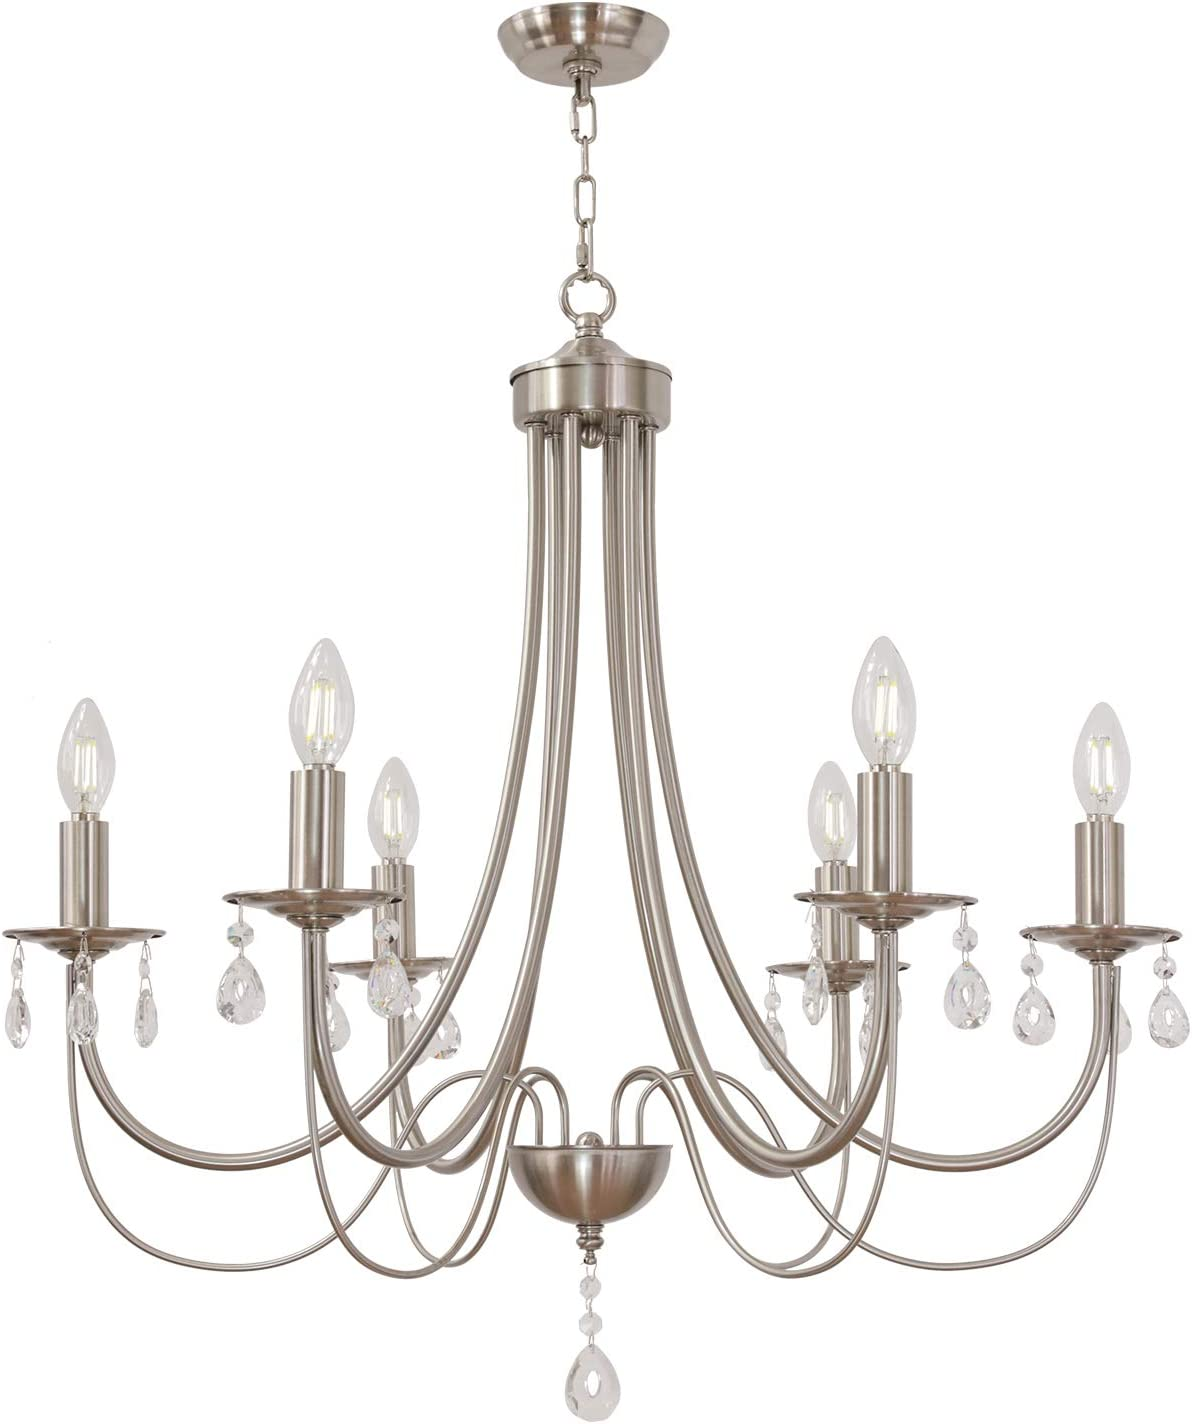 Amazon Com Brushed Nickel Chandelier With Clear Crystal Modern Farmhouse Lighting Candle 6 Lights Kitchen Pendant Lighting Hanging For Dining Room Living Room By Lucidce Home Improvement